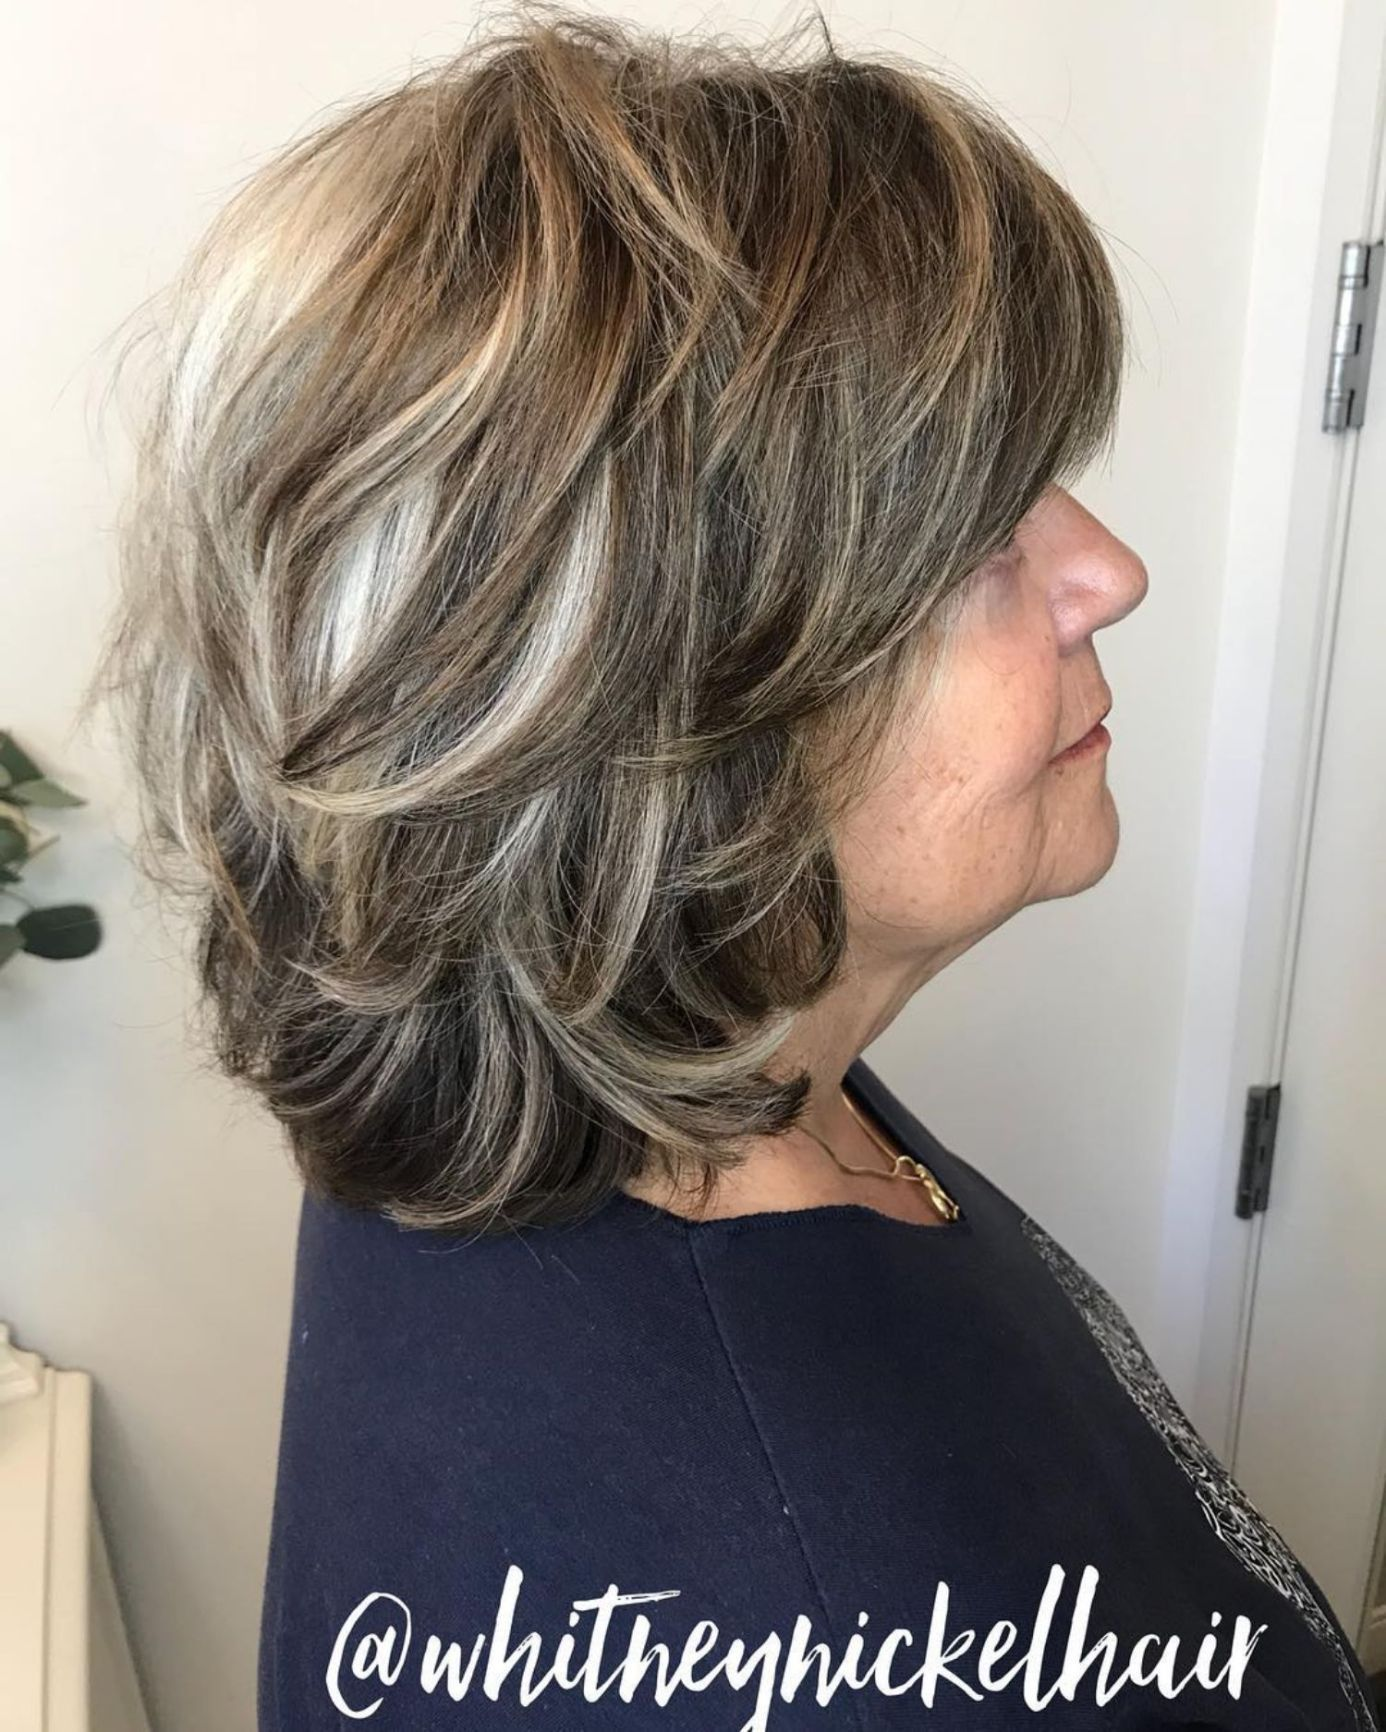 80 Best Modern Hairstyles And Haircuts For Women Over 50 Haircut For Thick Hair Modern Hairstyles Medium Length Hair Styles